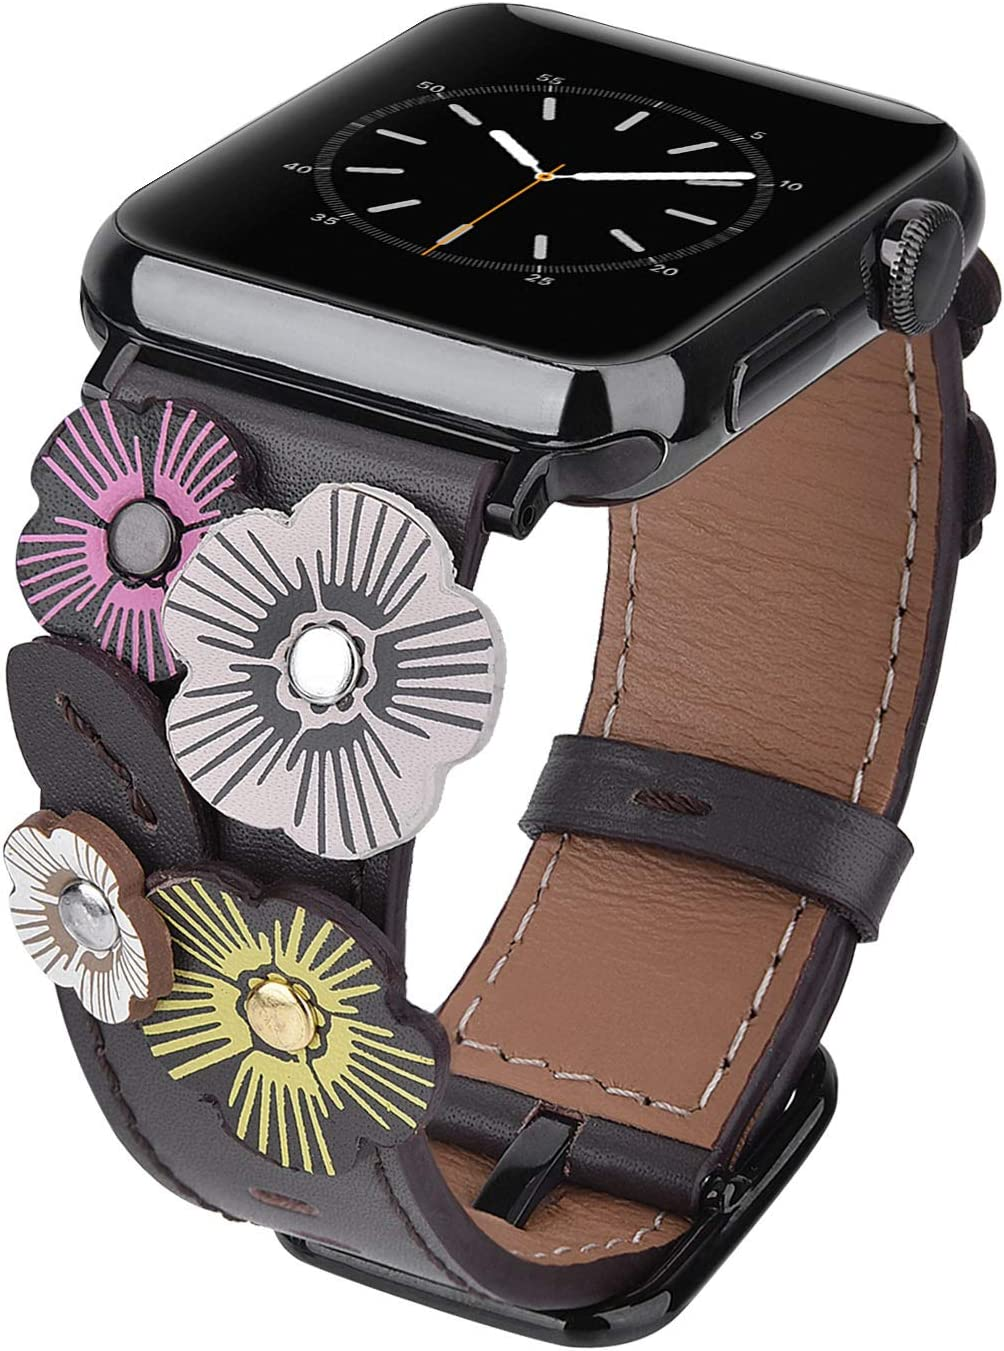 V-MORO Flowers Leather Bands Compatible with Apple Watch Bands 38mm 40mm Series 4/3/2/1 Women with Stainless Steel Buckle Black, iWatch Replacement Bands Strap Wristbands (Gray, 38mm/40mm)